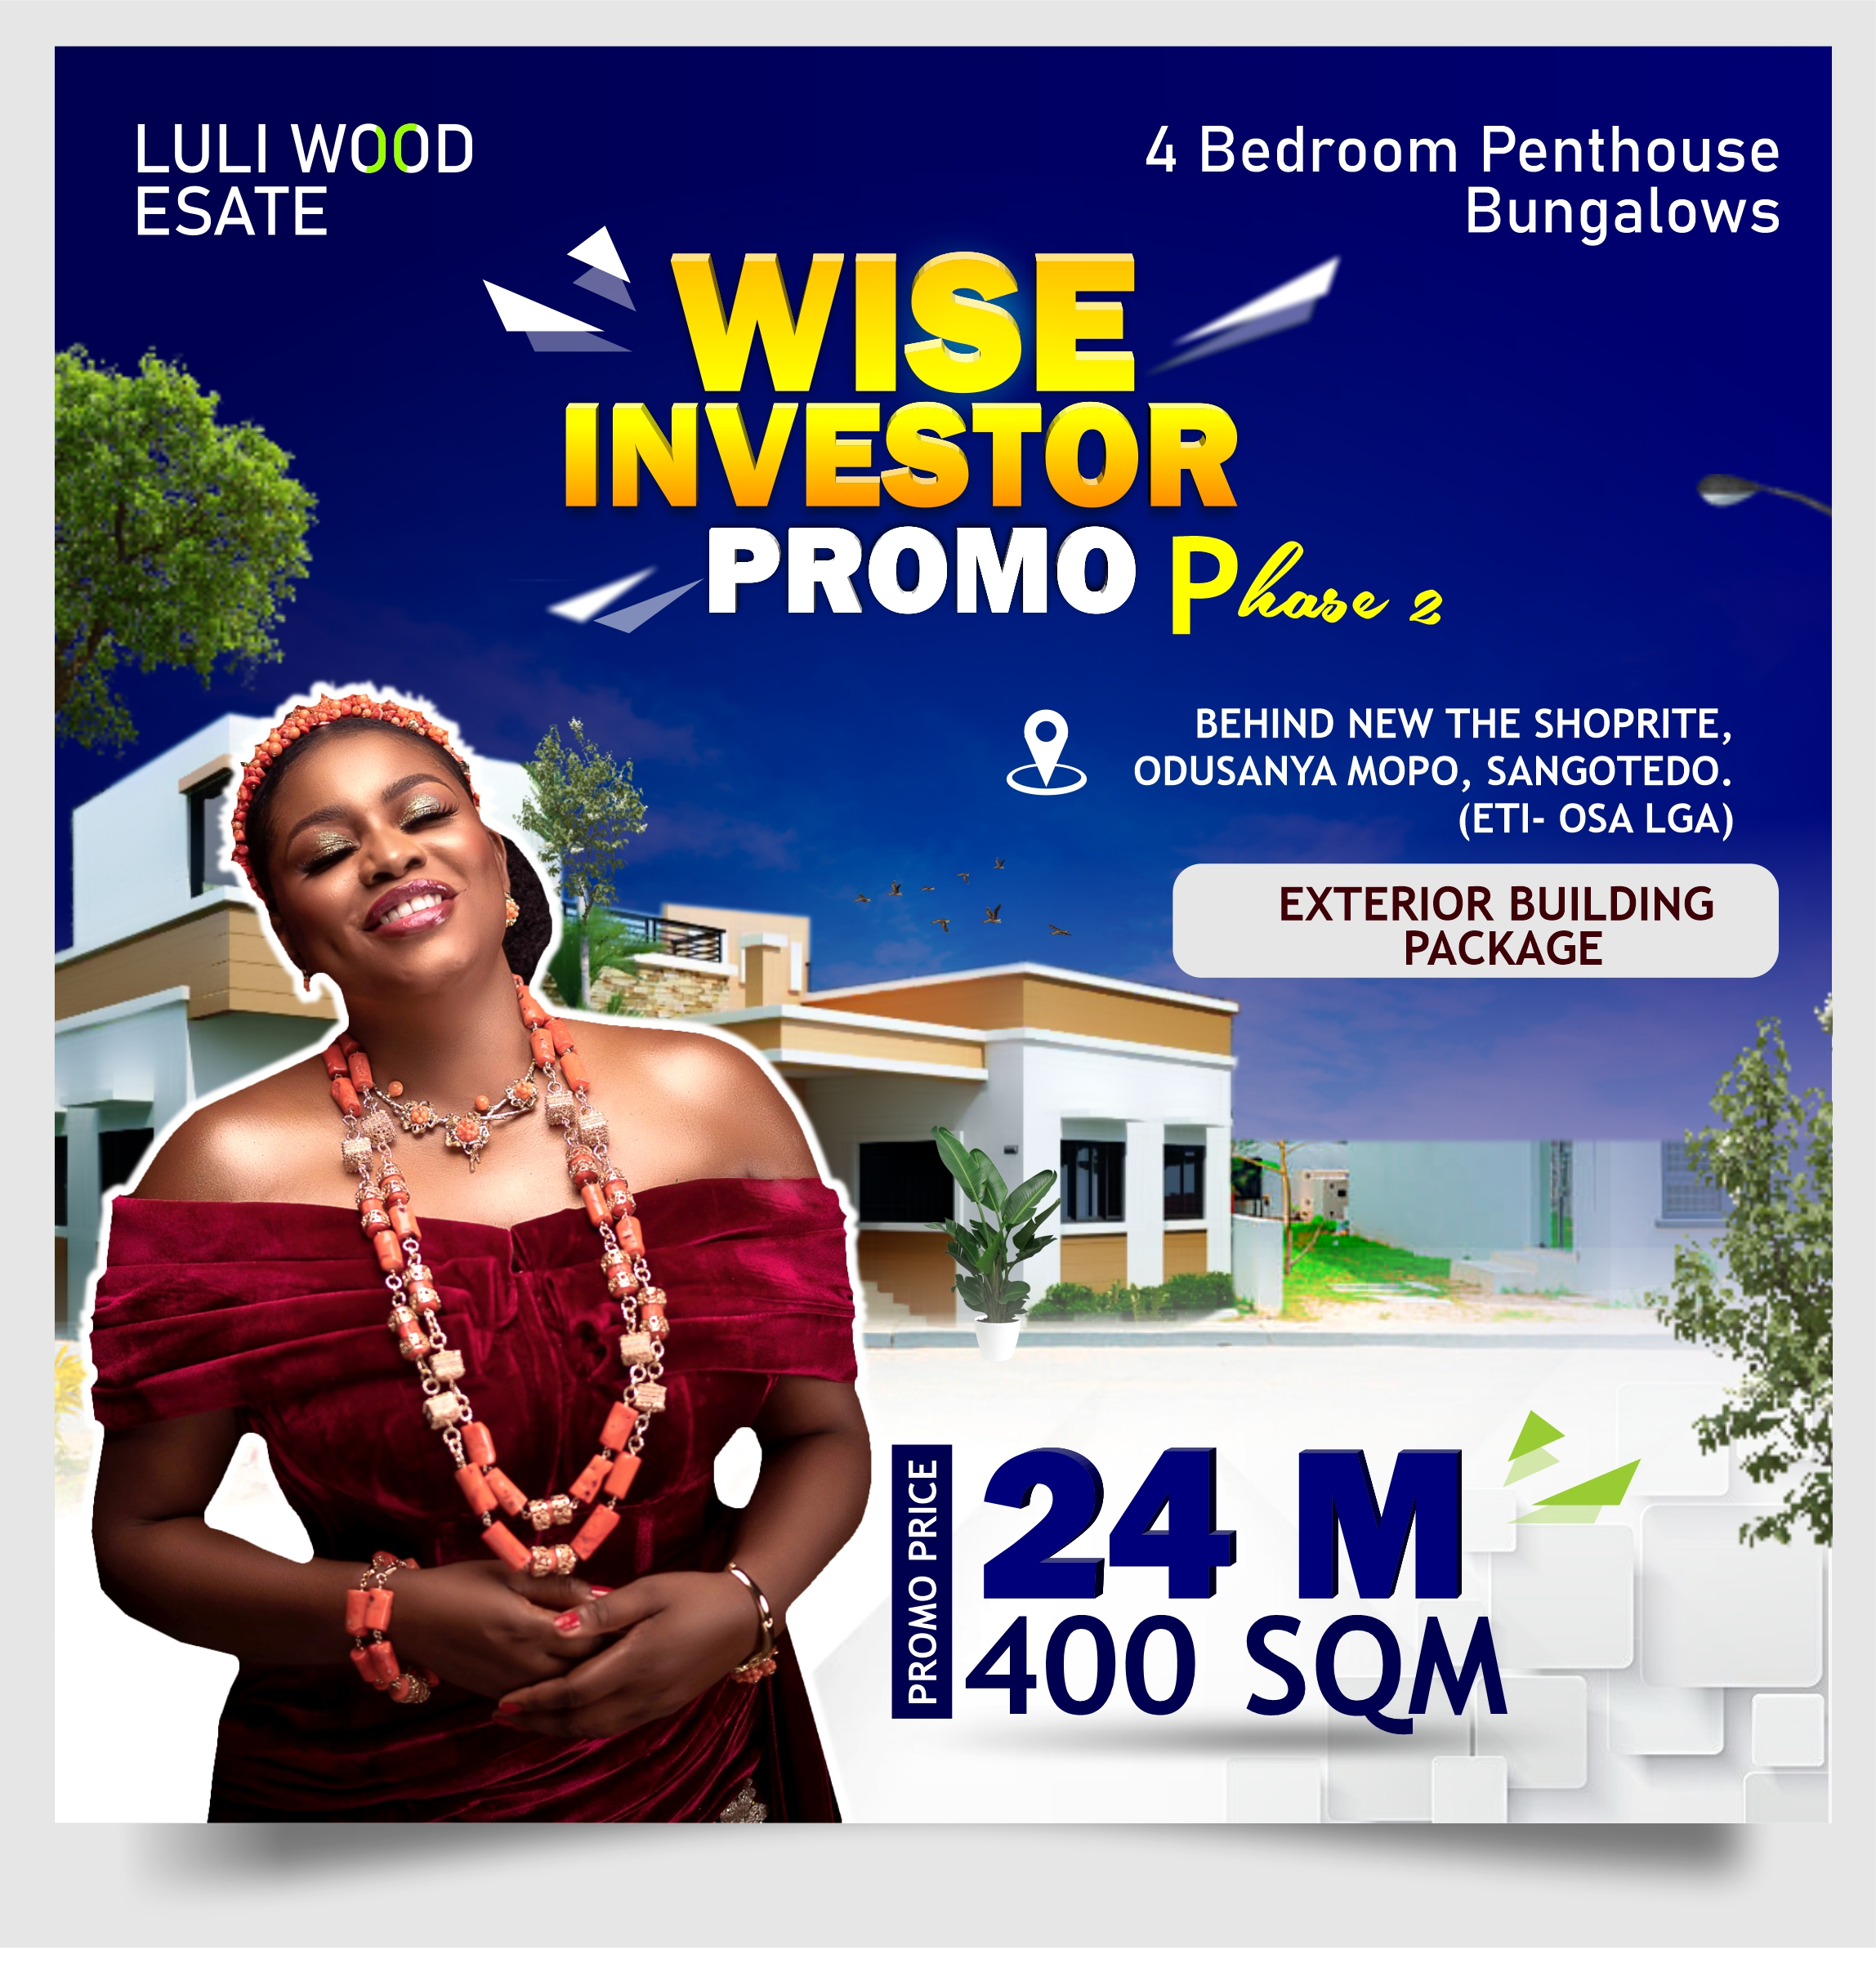 WISE INVESTOR PROMO PHASE 2 4 BEDROOM PENTHOUSE BUNGALOW WEBSITE